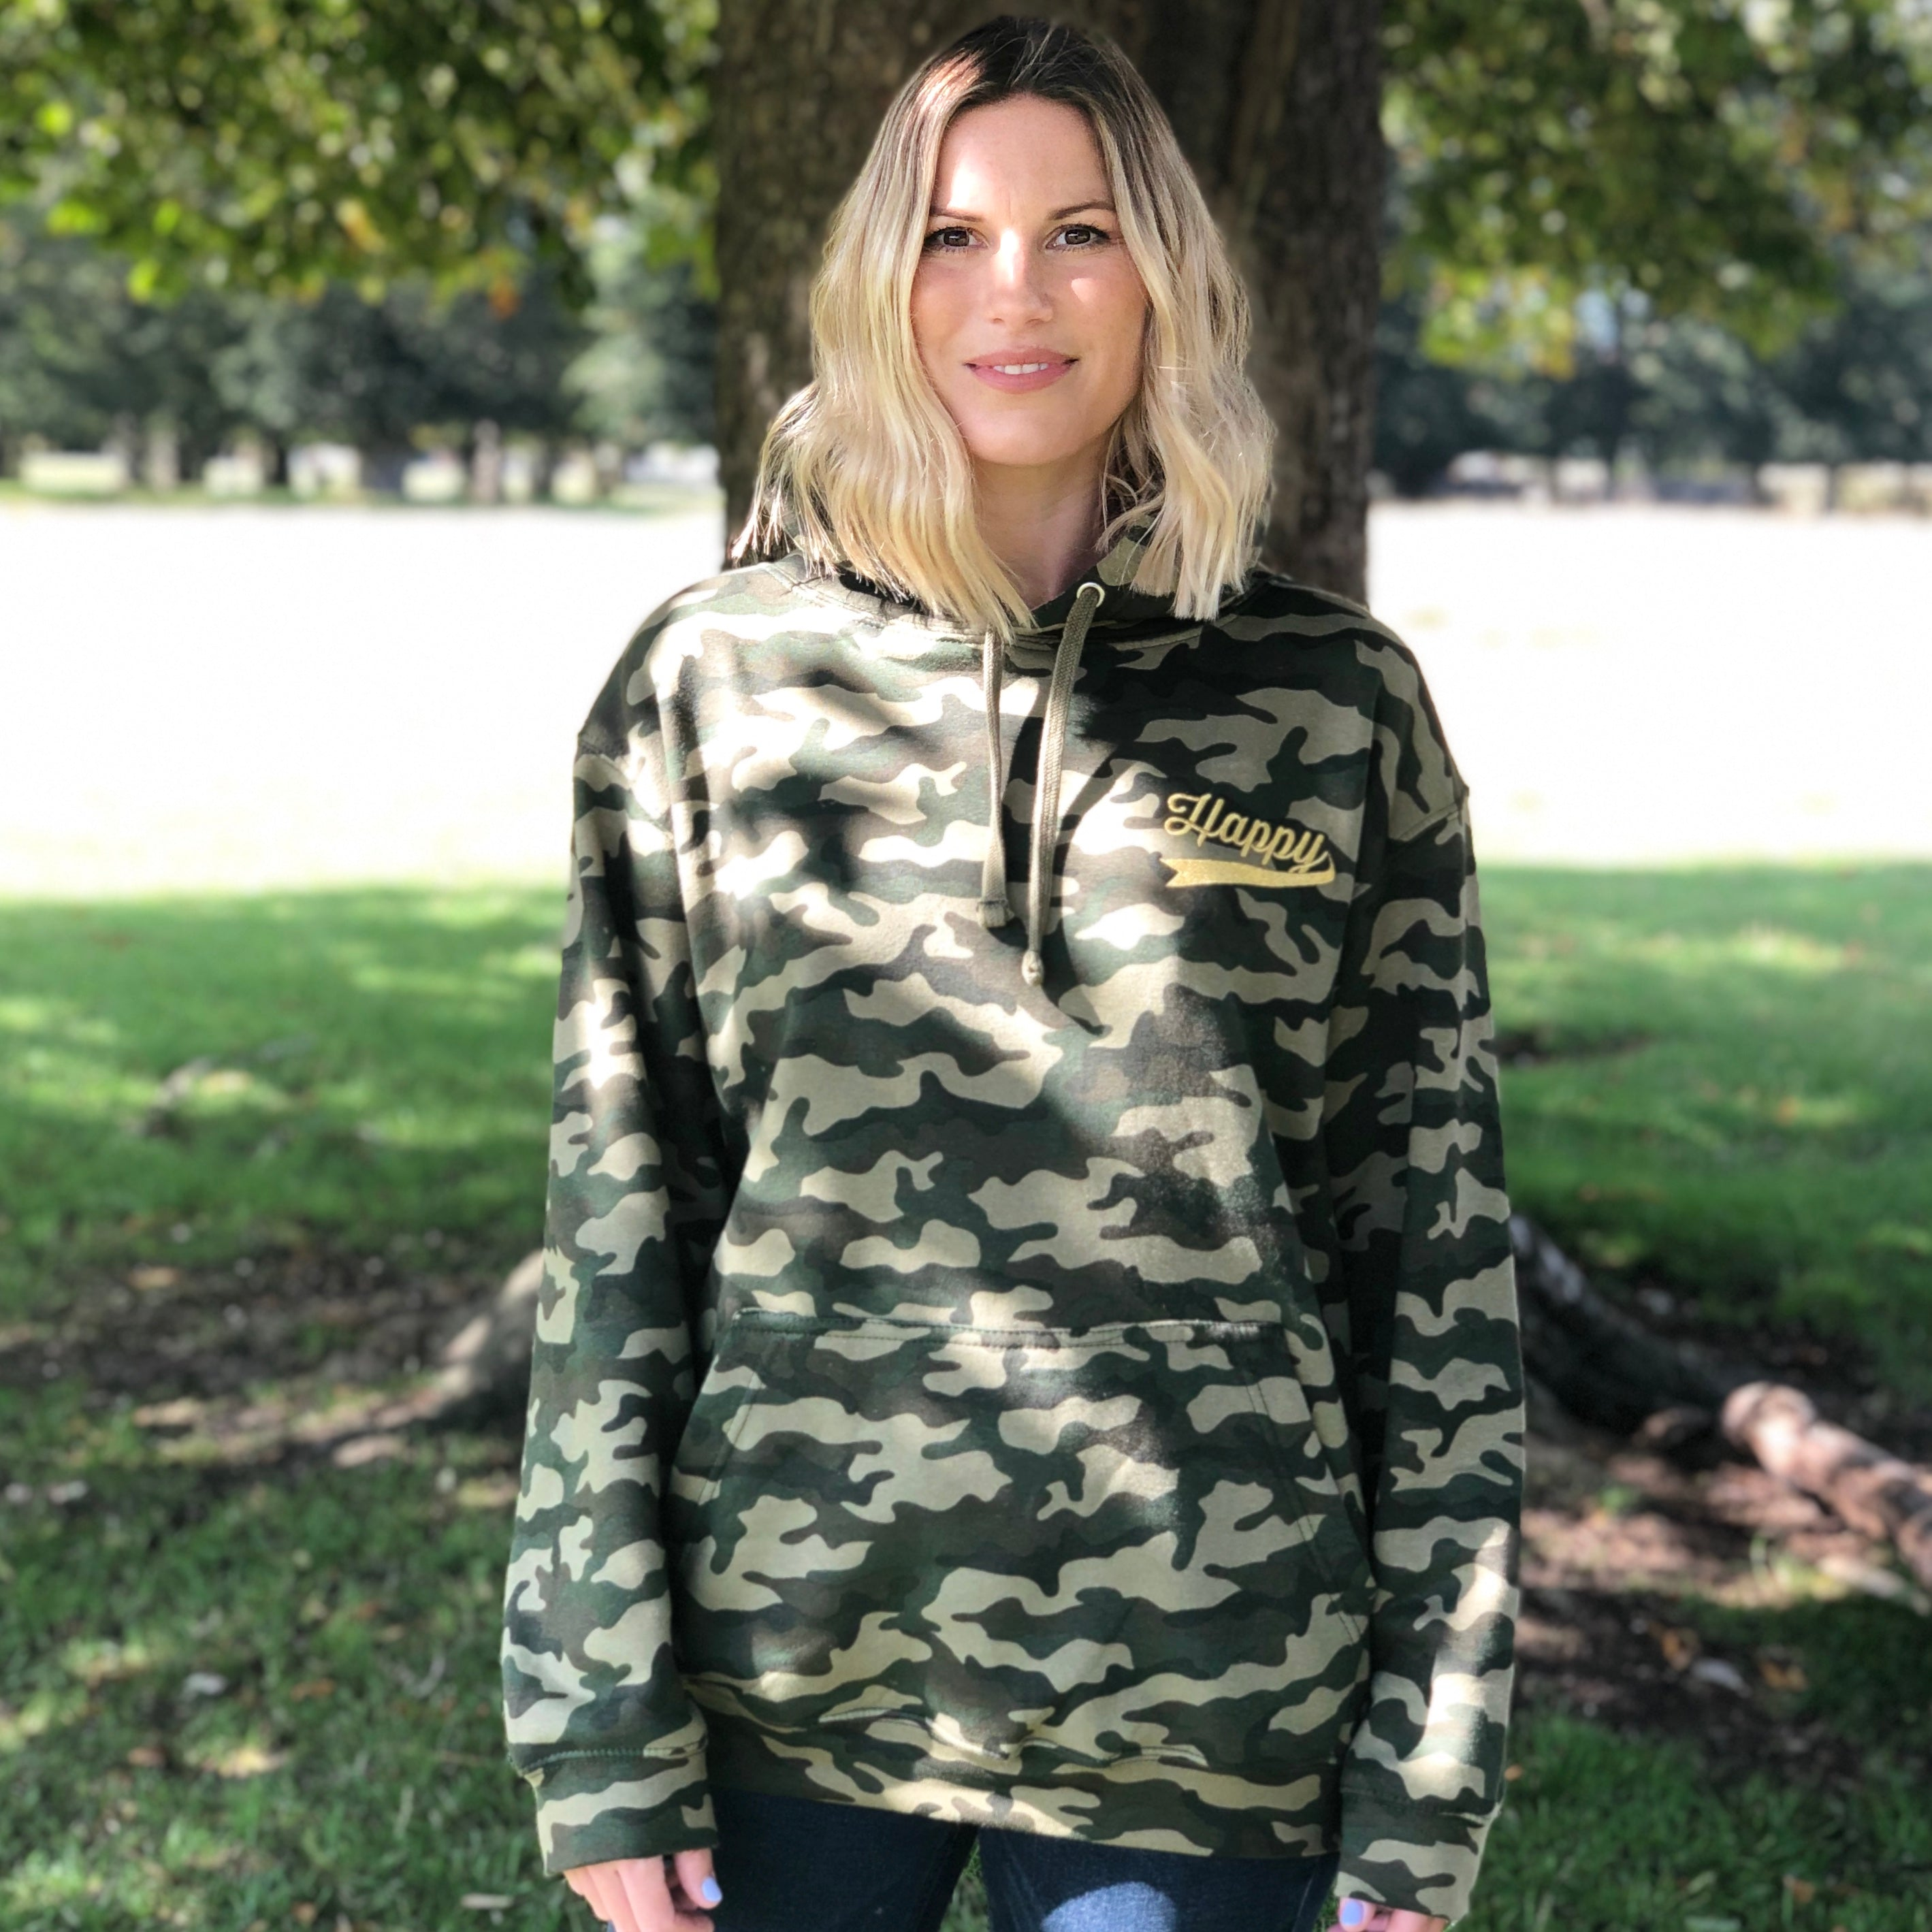 HAPPY HOODIE - Camo Green with Gold